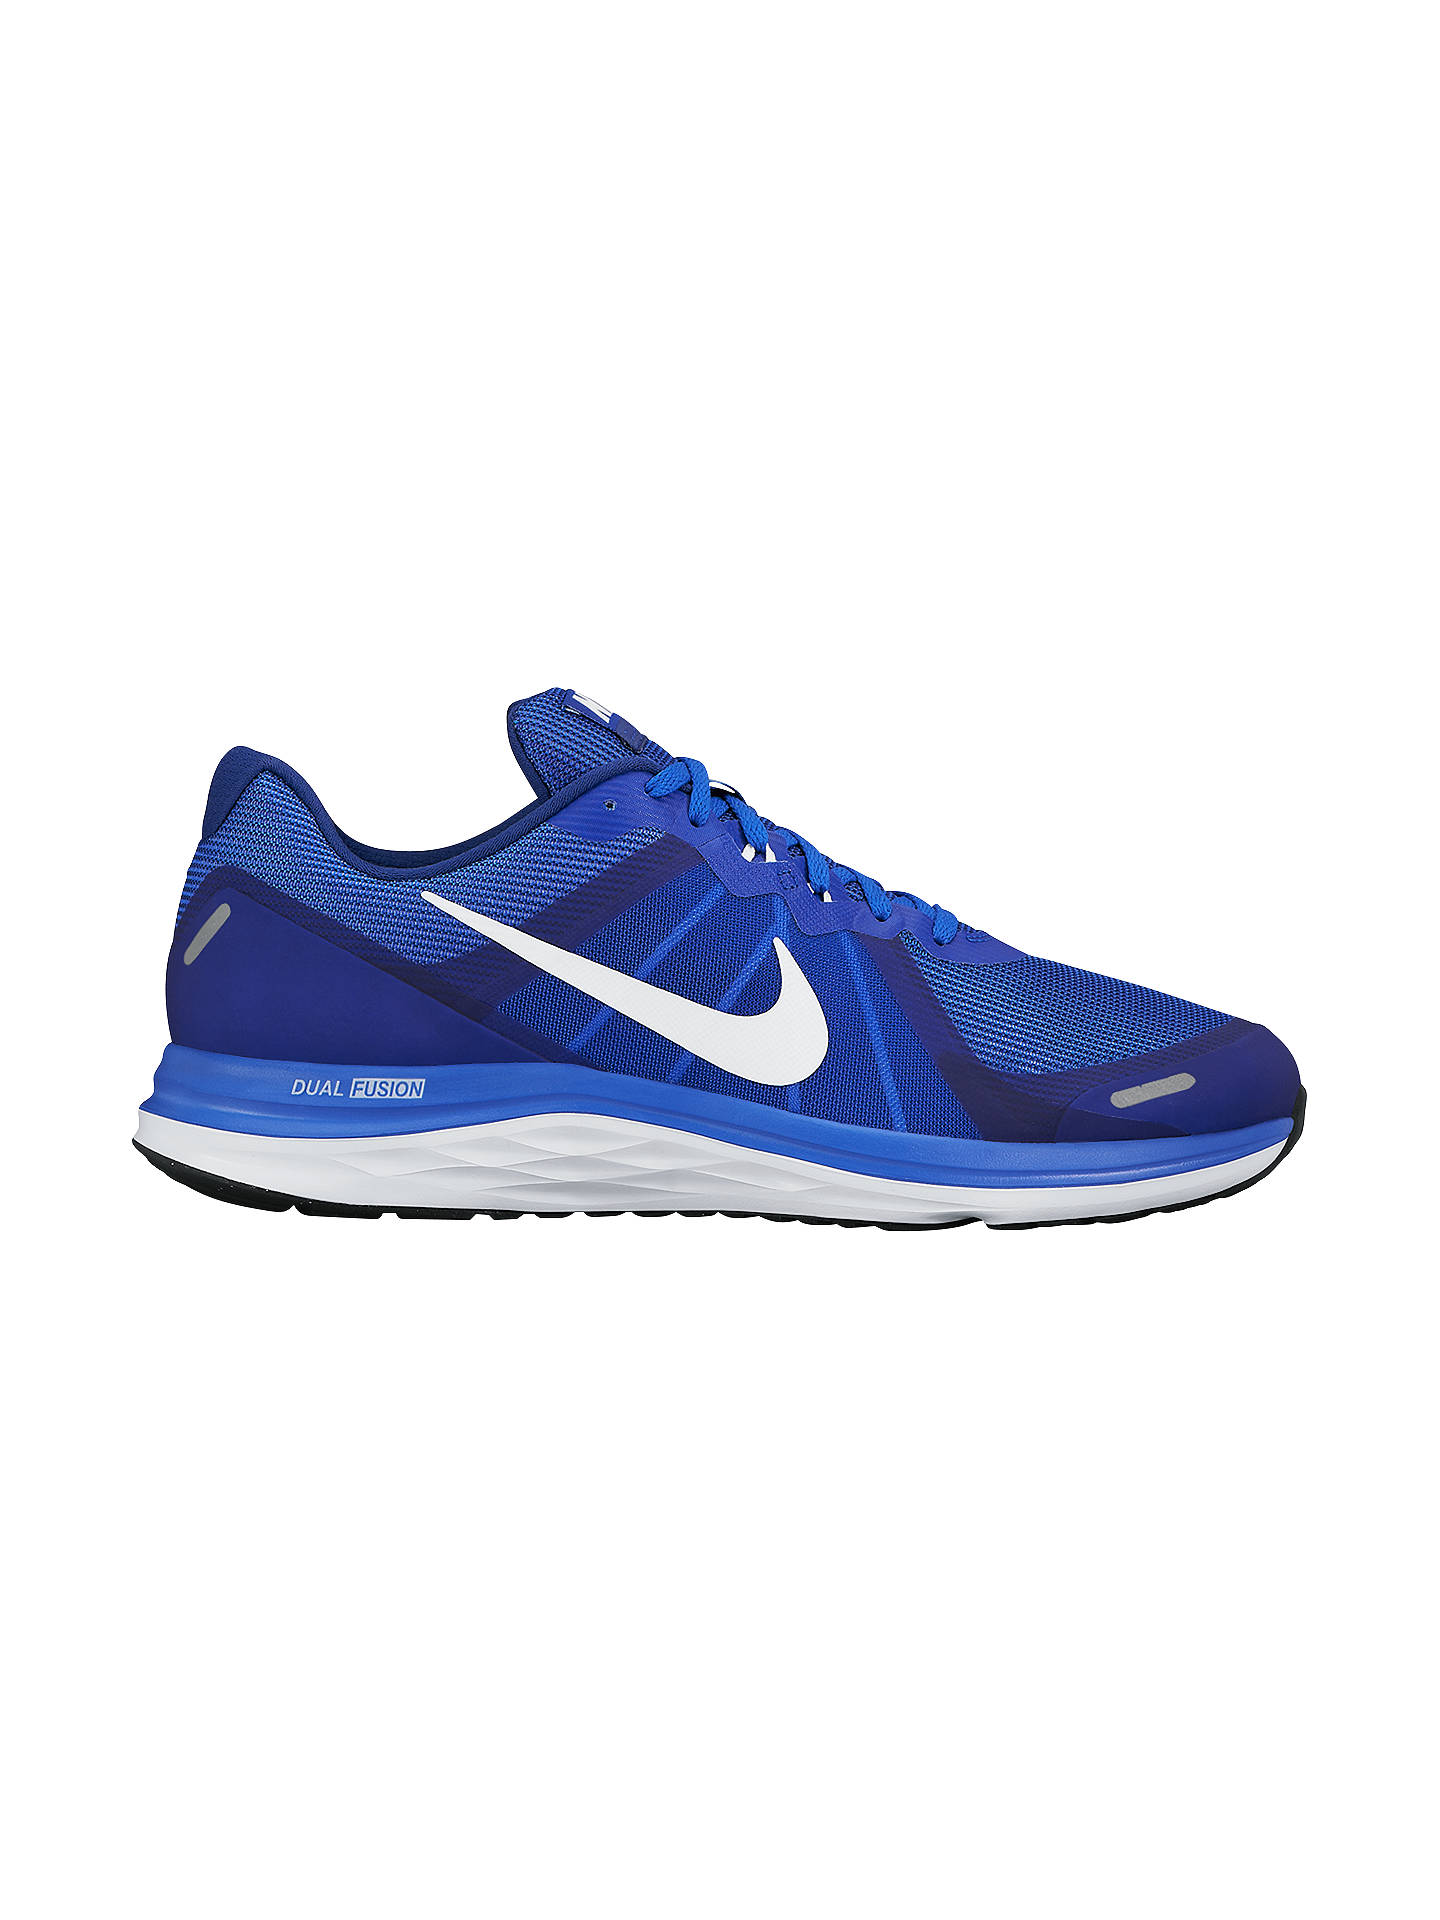 BuyNike Dual Fusion X 2 Men s Running Shoes 7bd2f1b47651